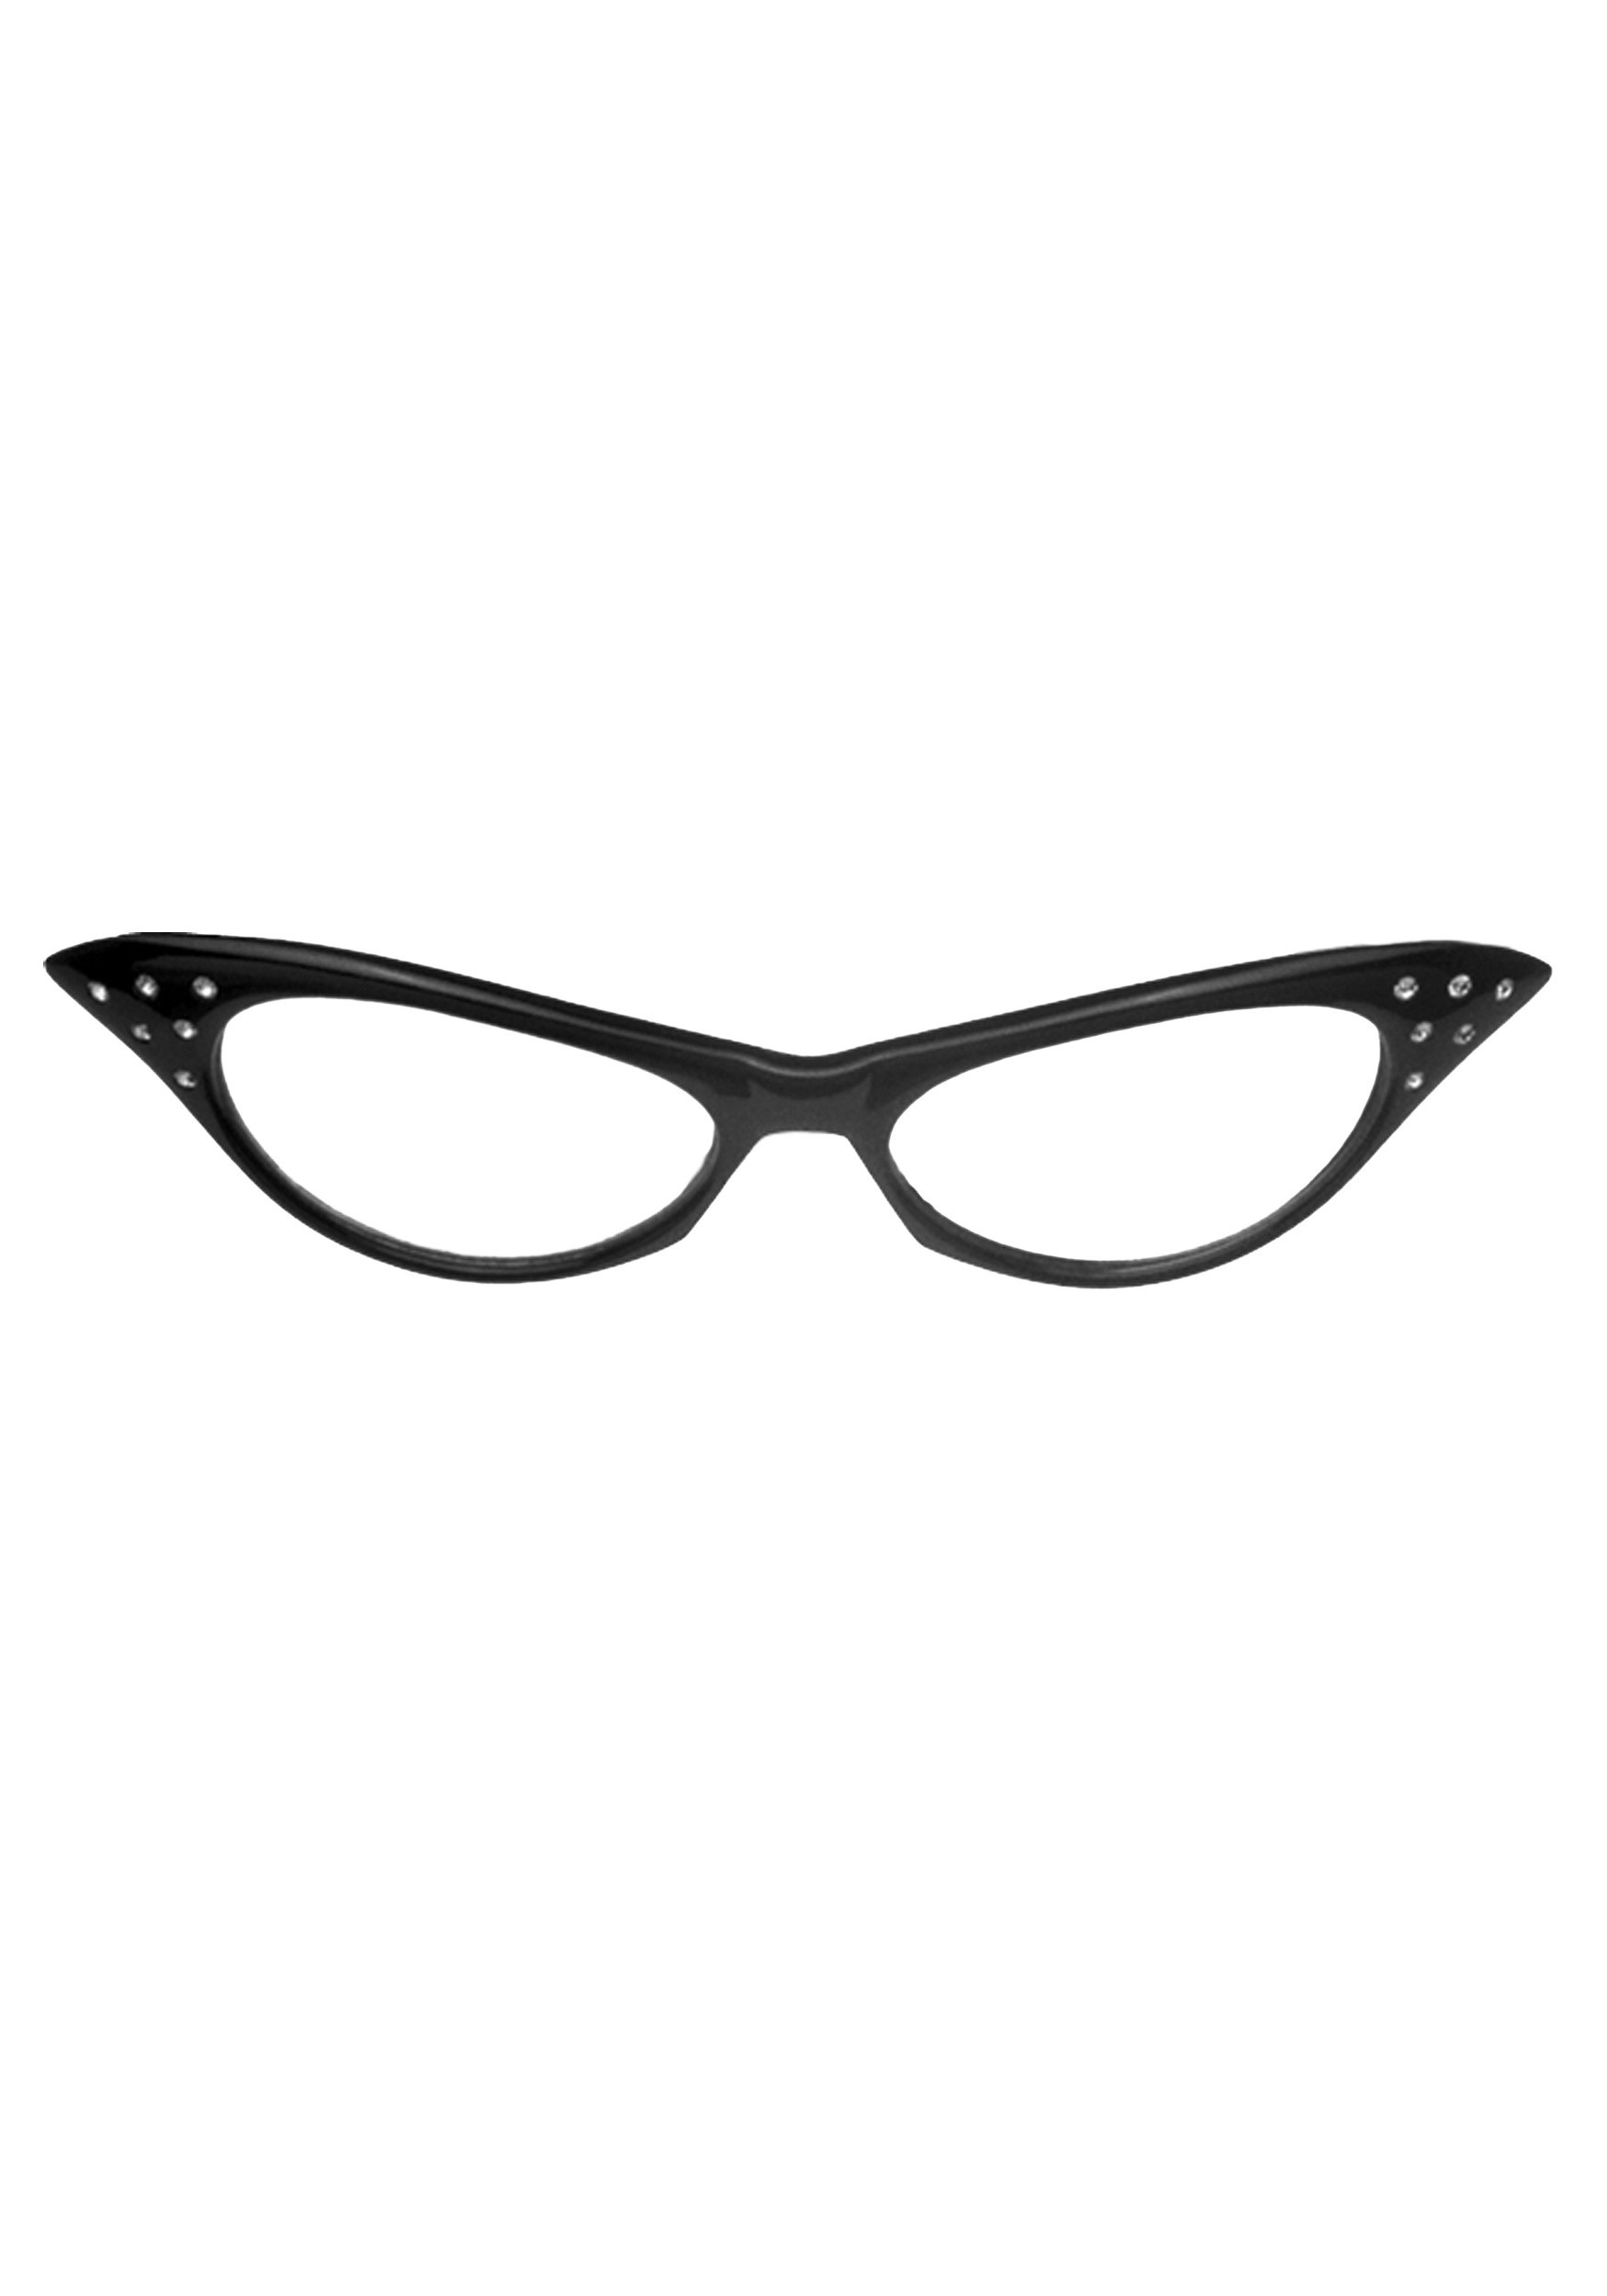 50s Retro Black Cat Eye Frame Glasses